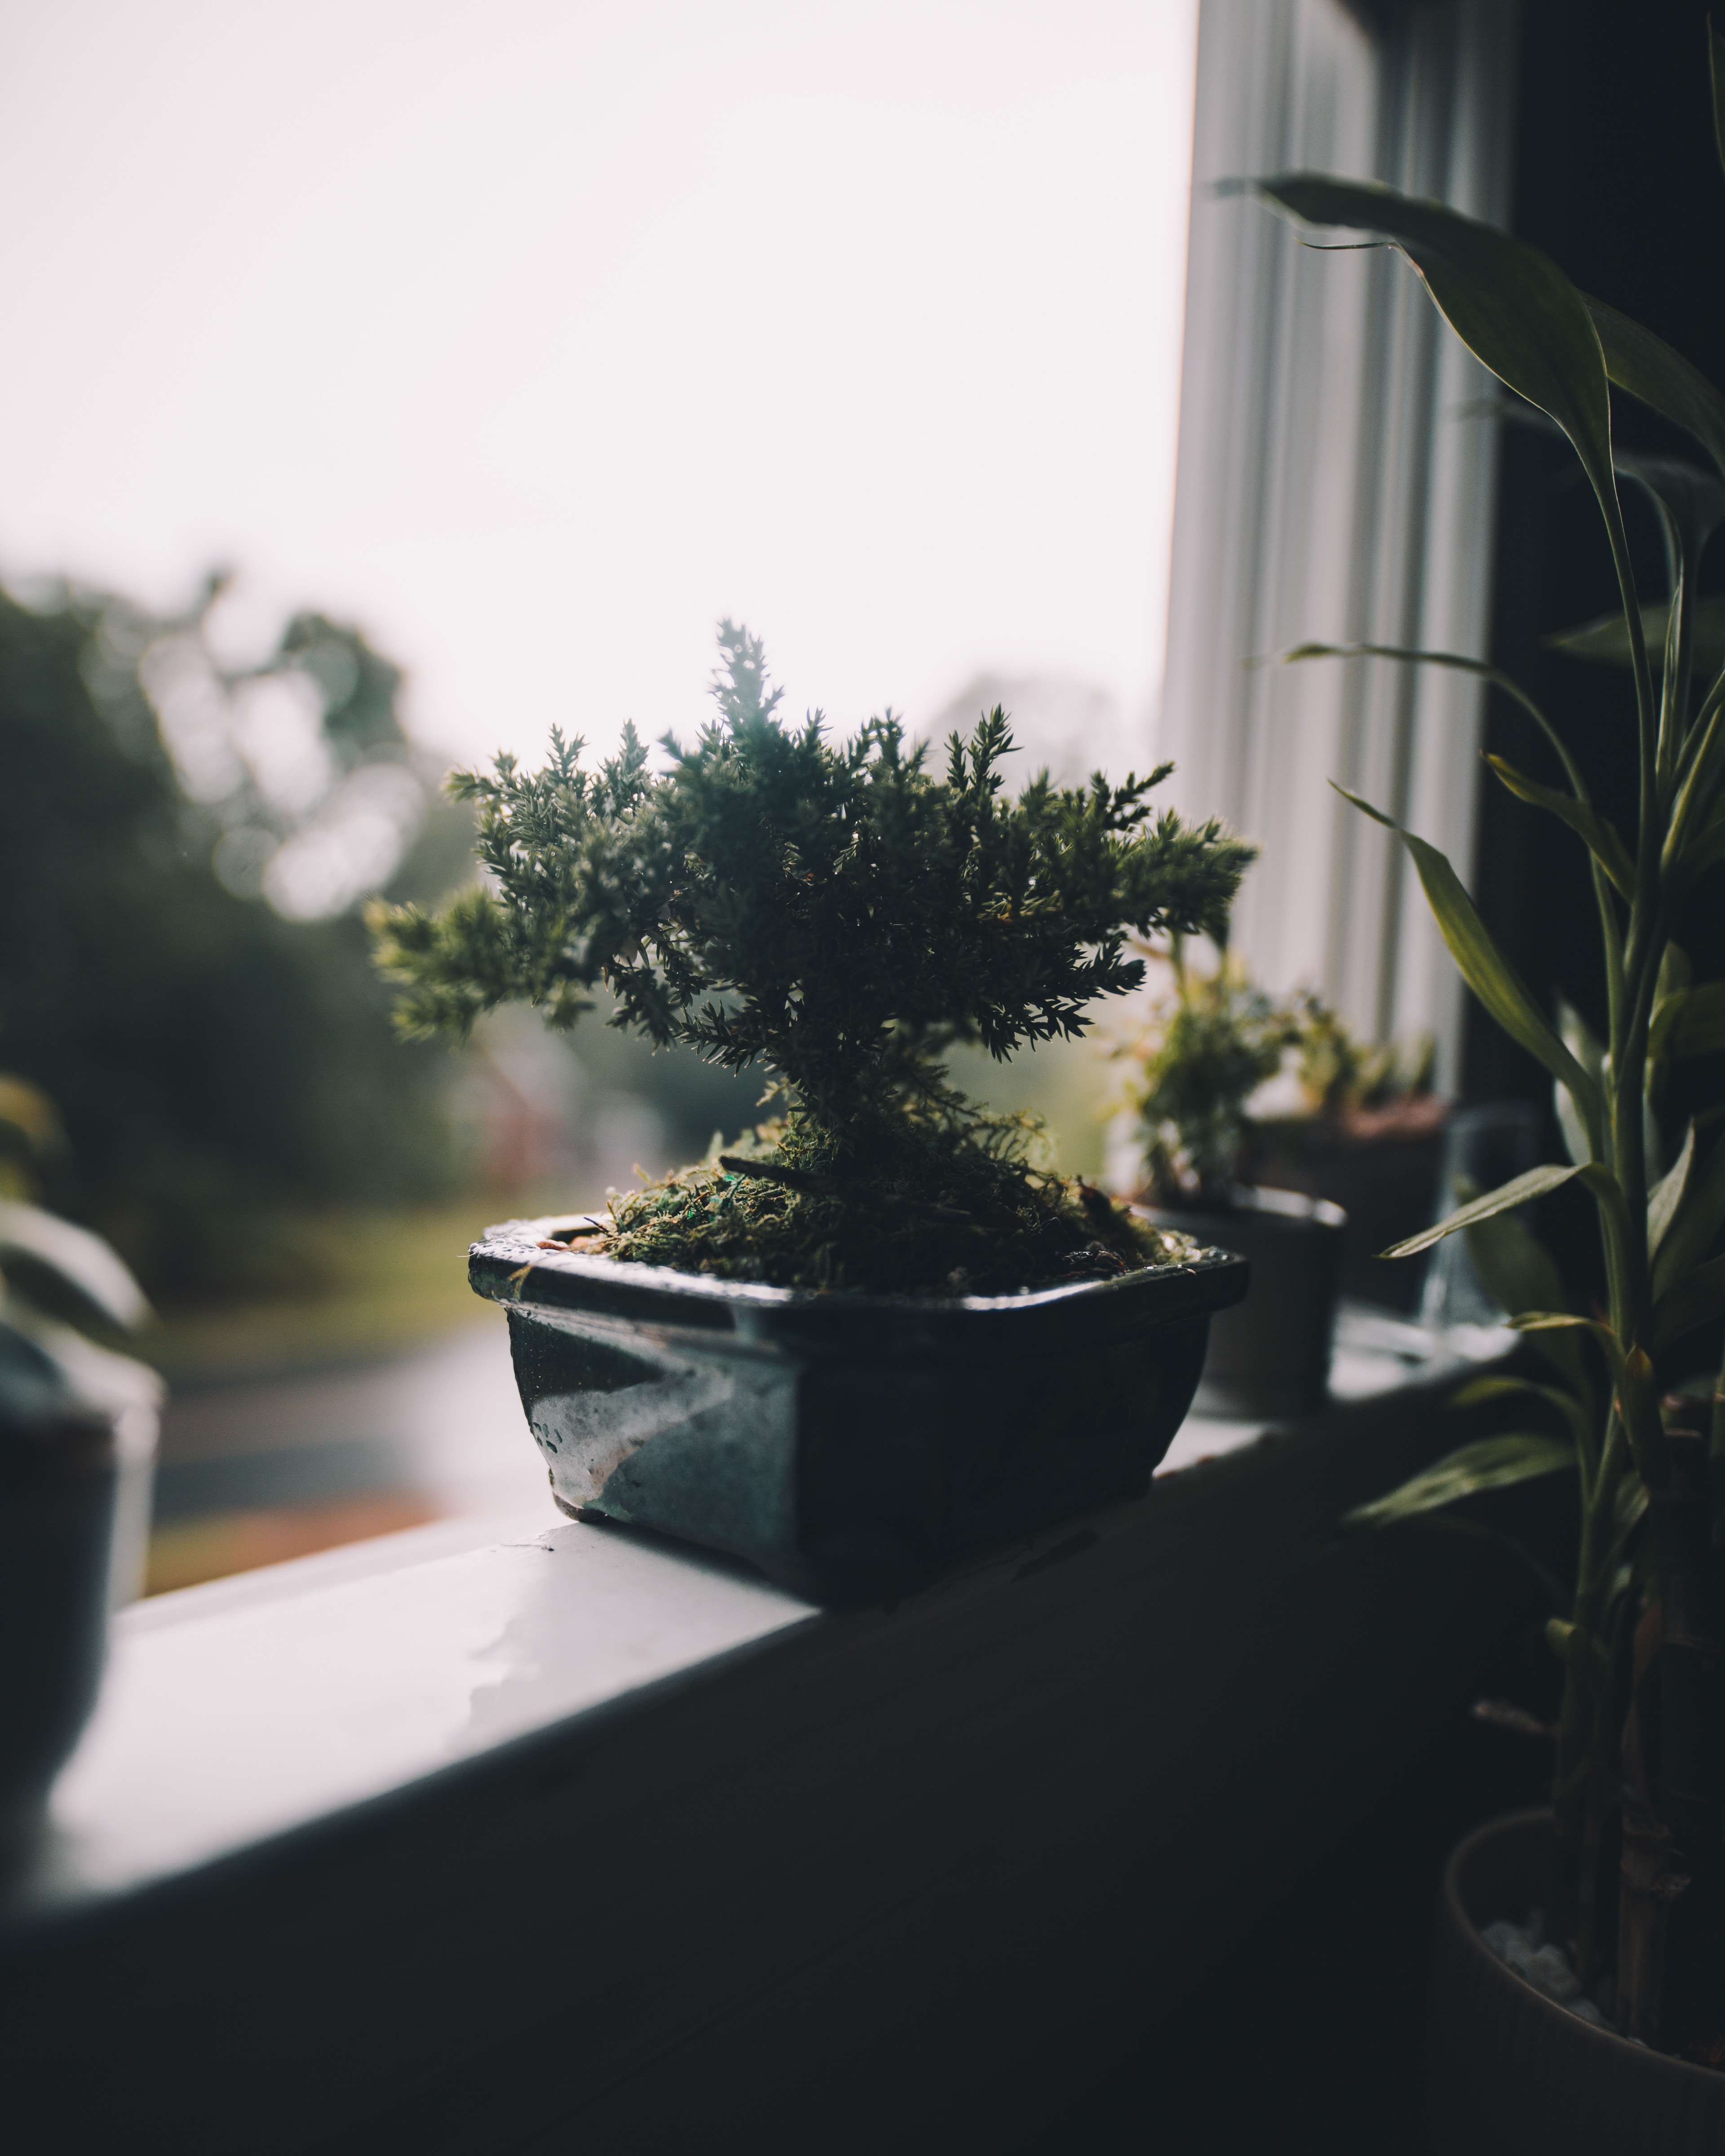 Popular Indoor Plant images for mobile phone